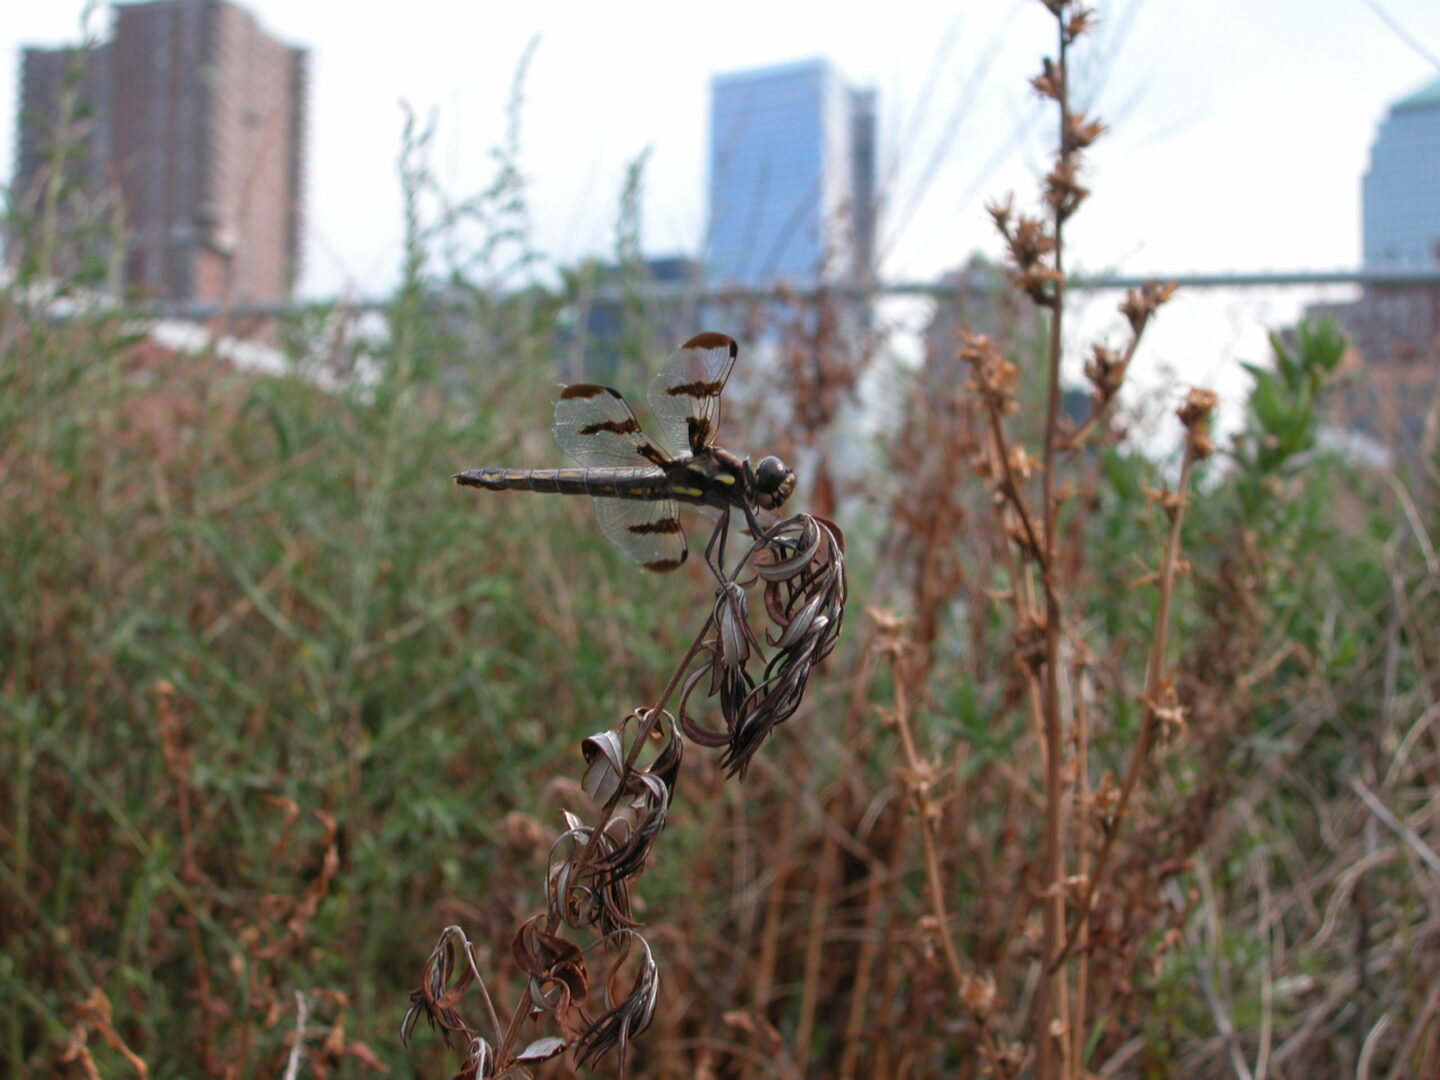 A large dragonfly perches on a stalk